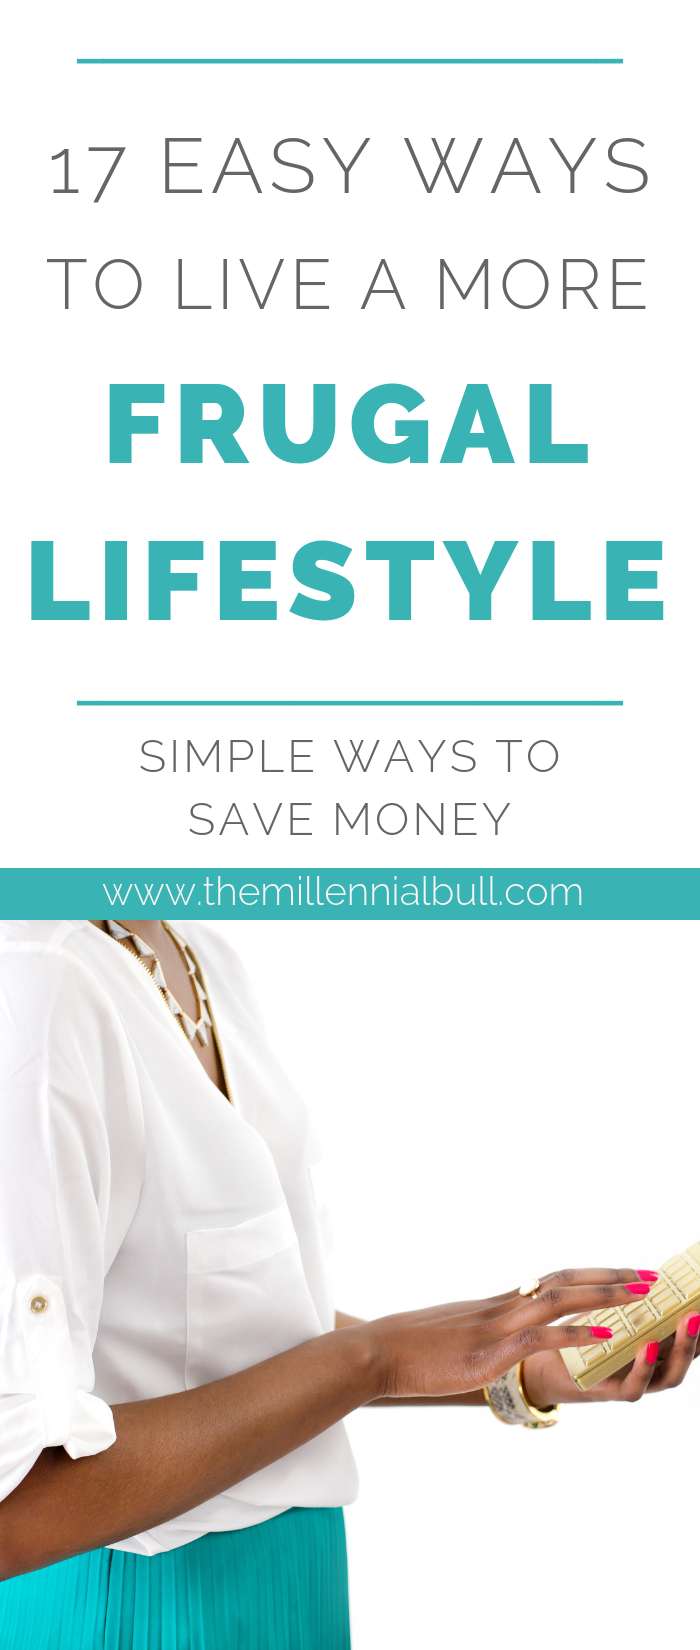 frugal lifestyle 002 - 17+ Easy Ways To Live A More Frugal Life